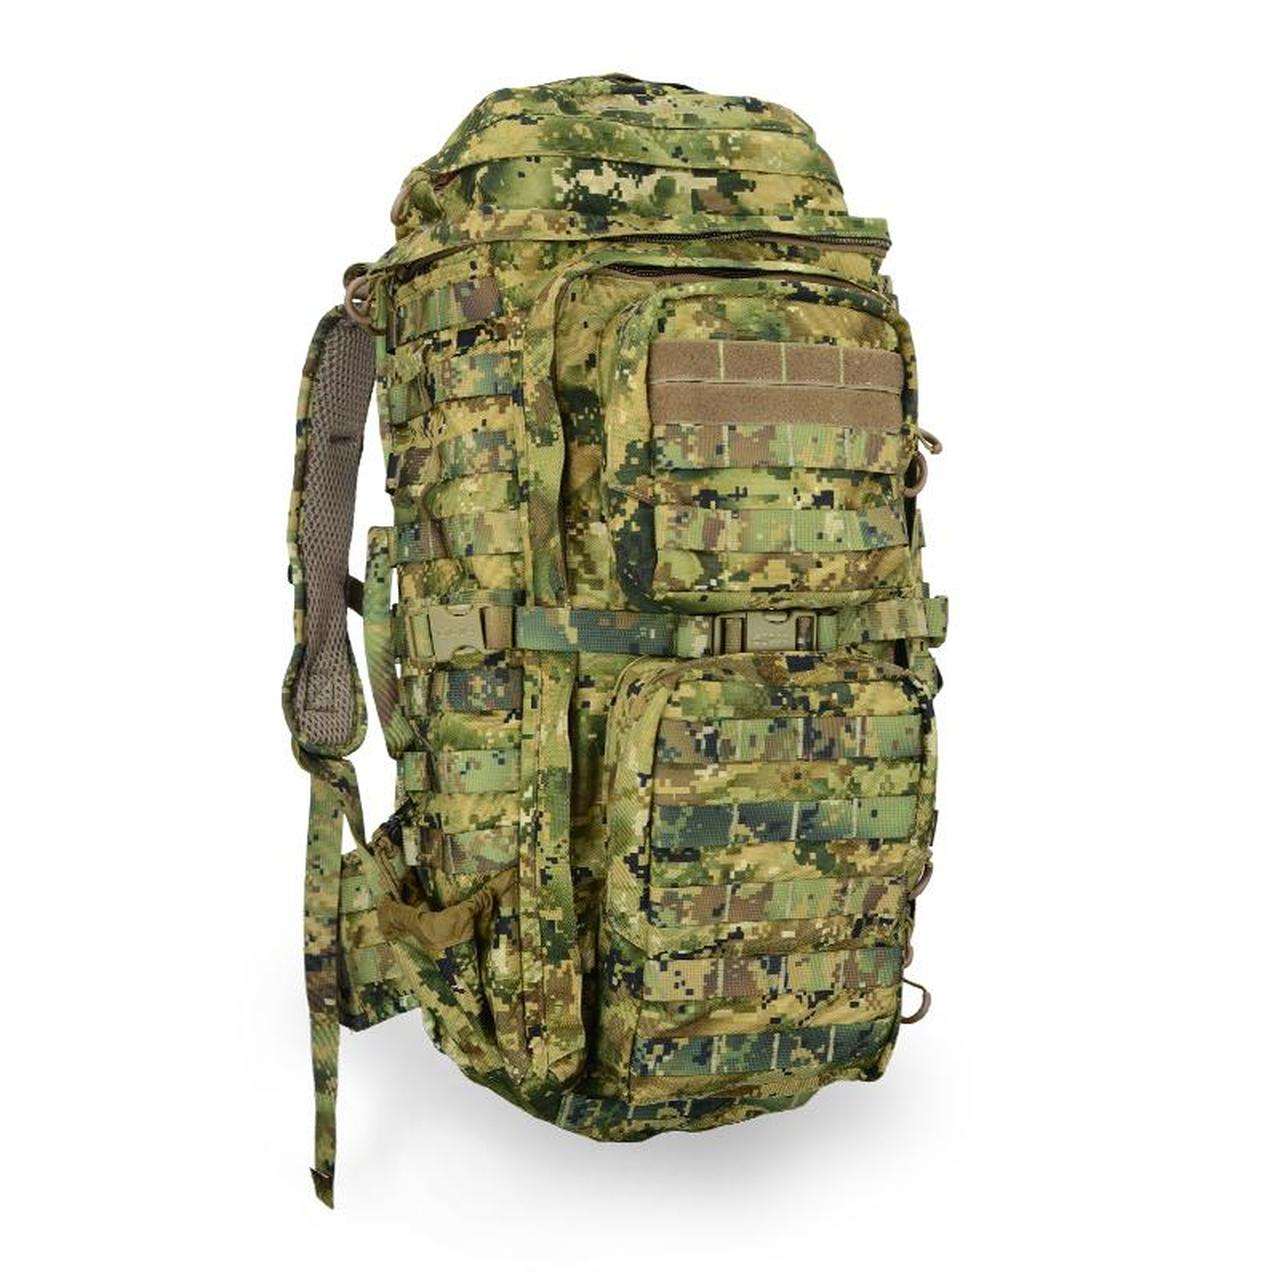 a camo Eberlestock FAC Track Pack for elk hunt